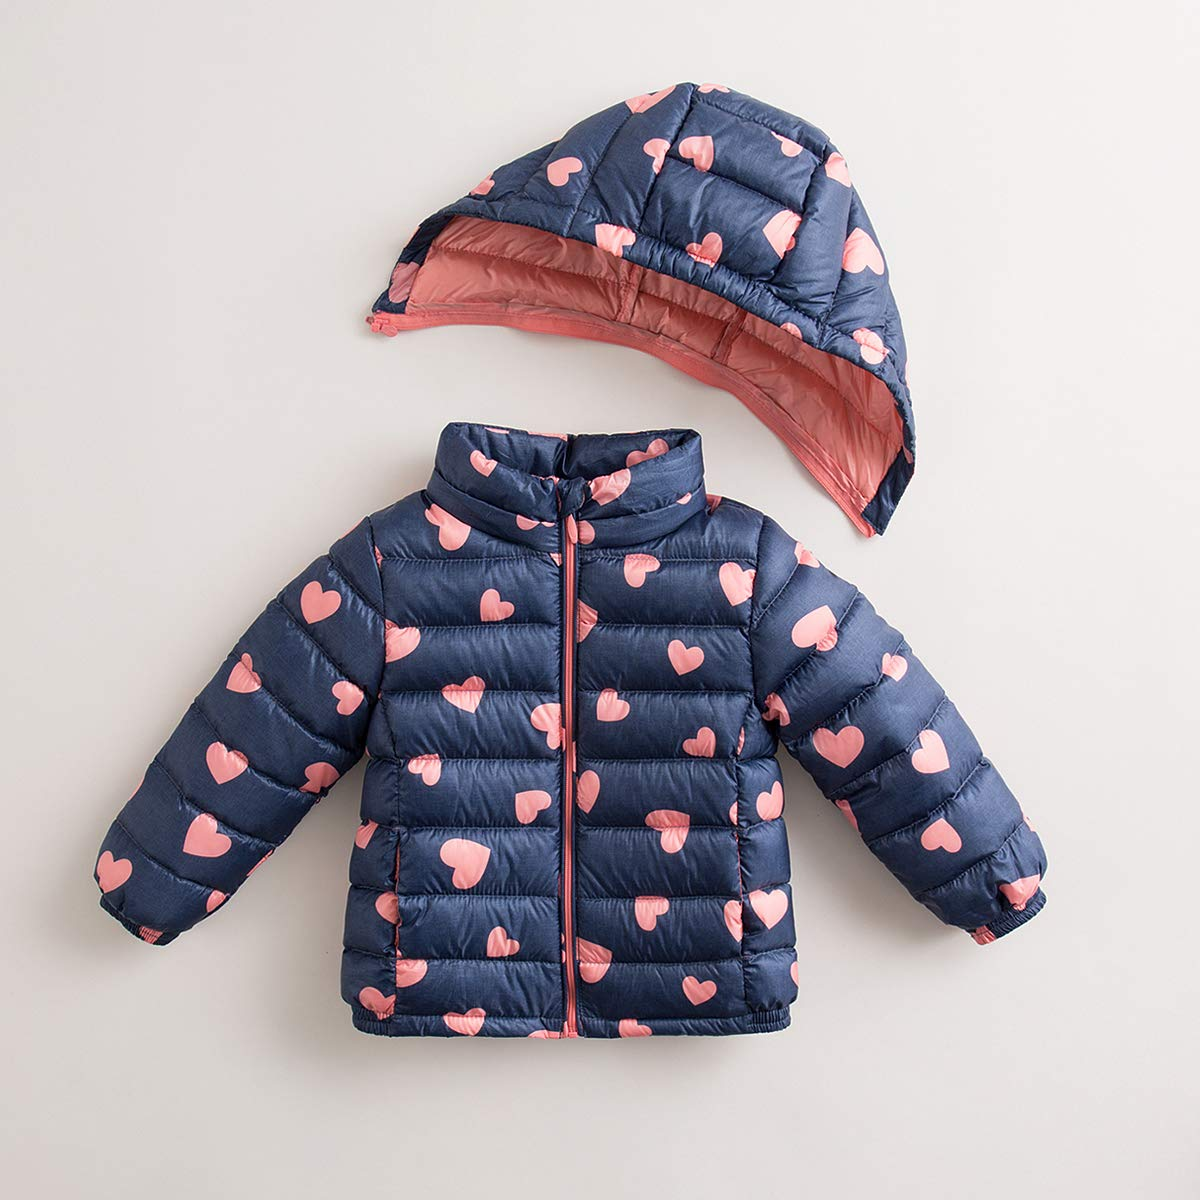 marc janie Little Boys Girls' Winter Pattern Printing Ultra Light Weight Down Jacket Blue Pink Love 3T (90 cm) by marc janie (Image #2)